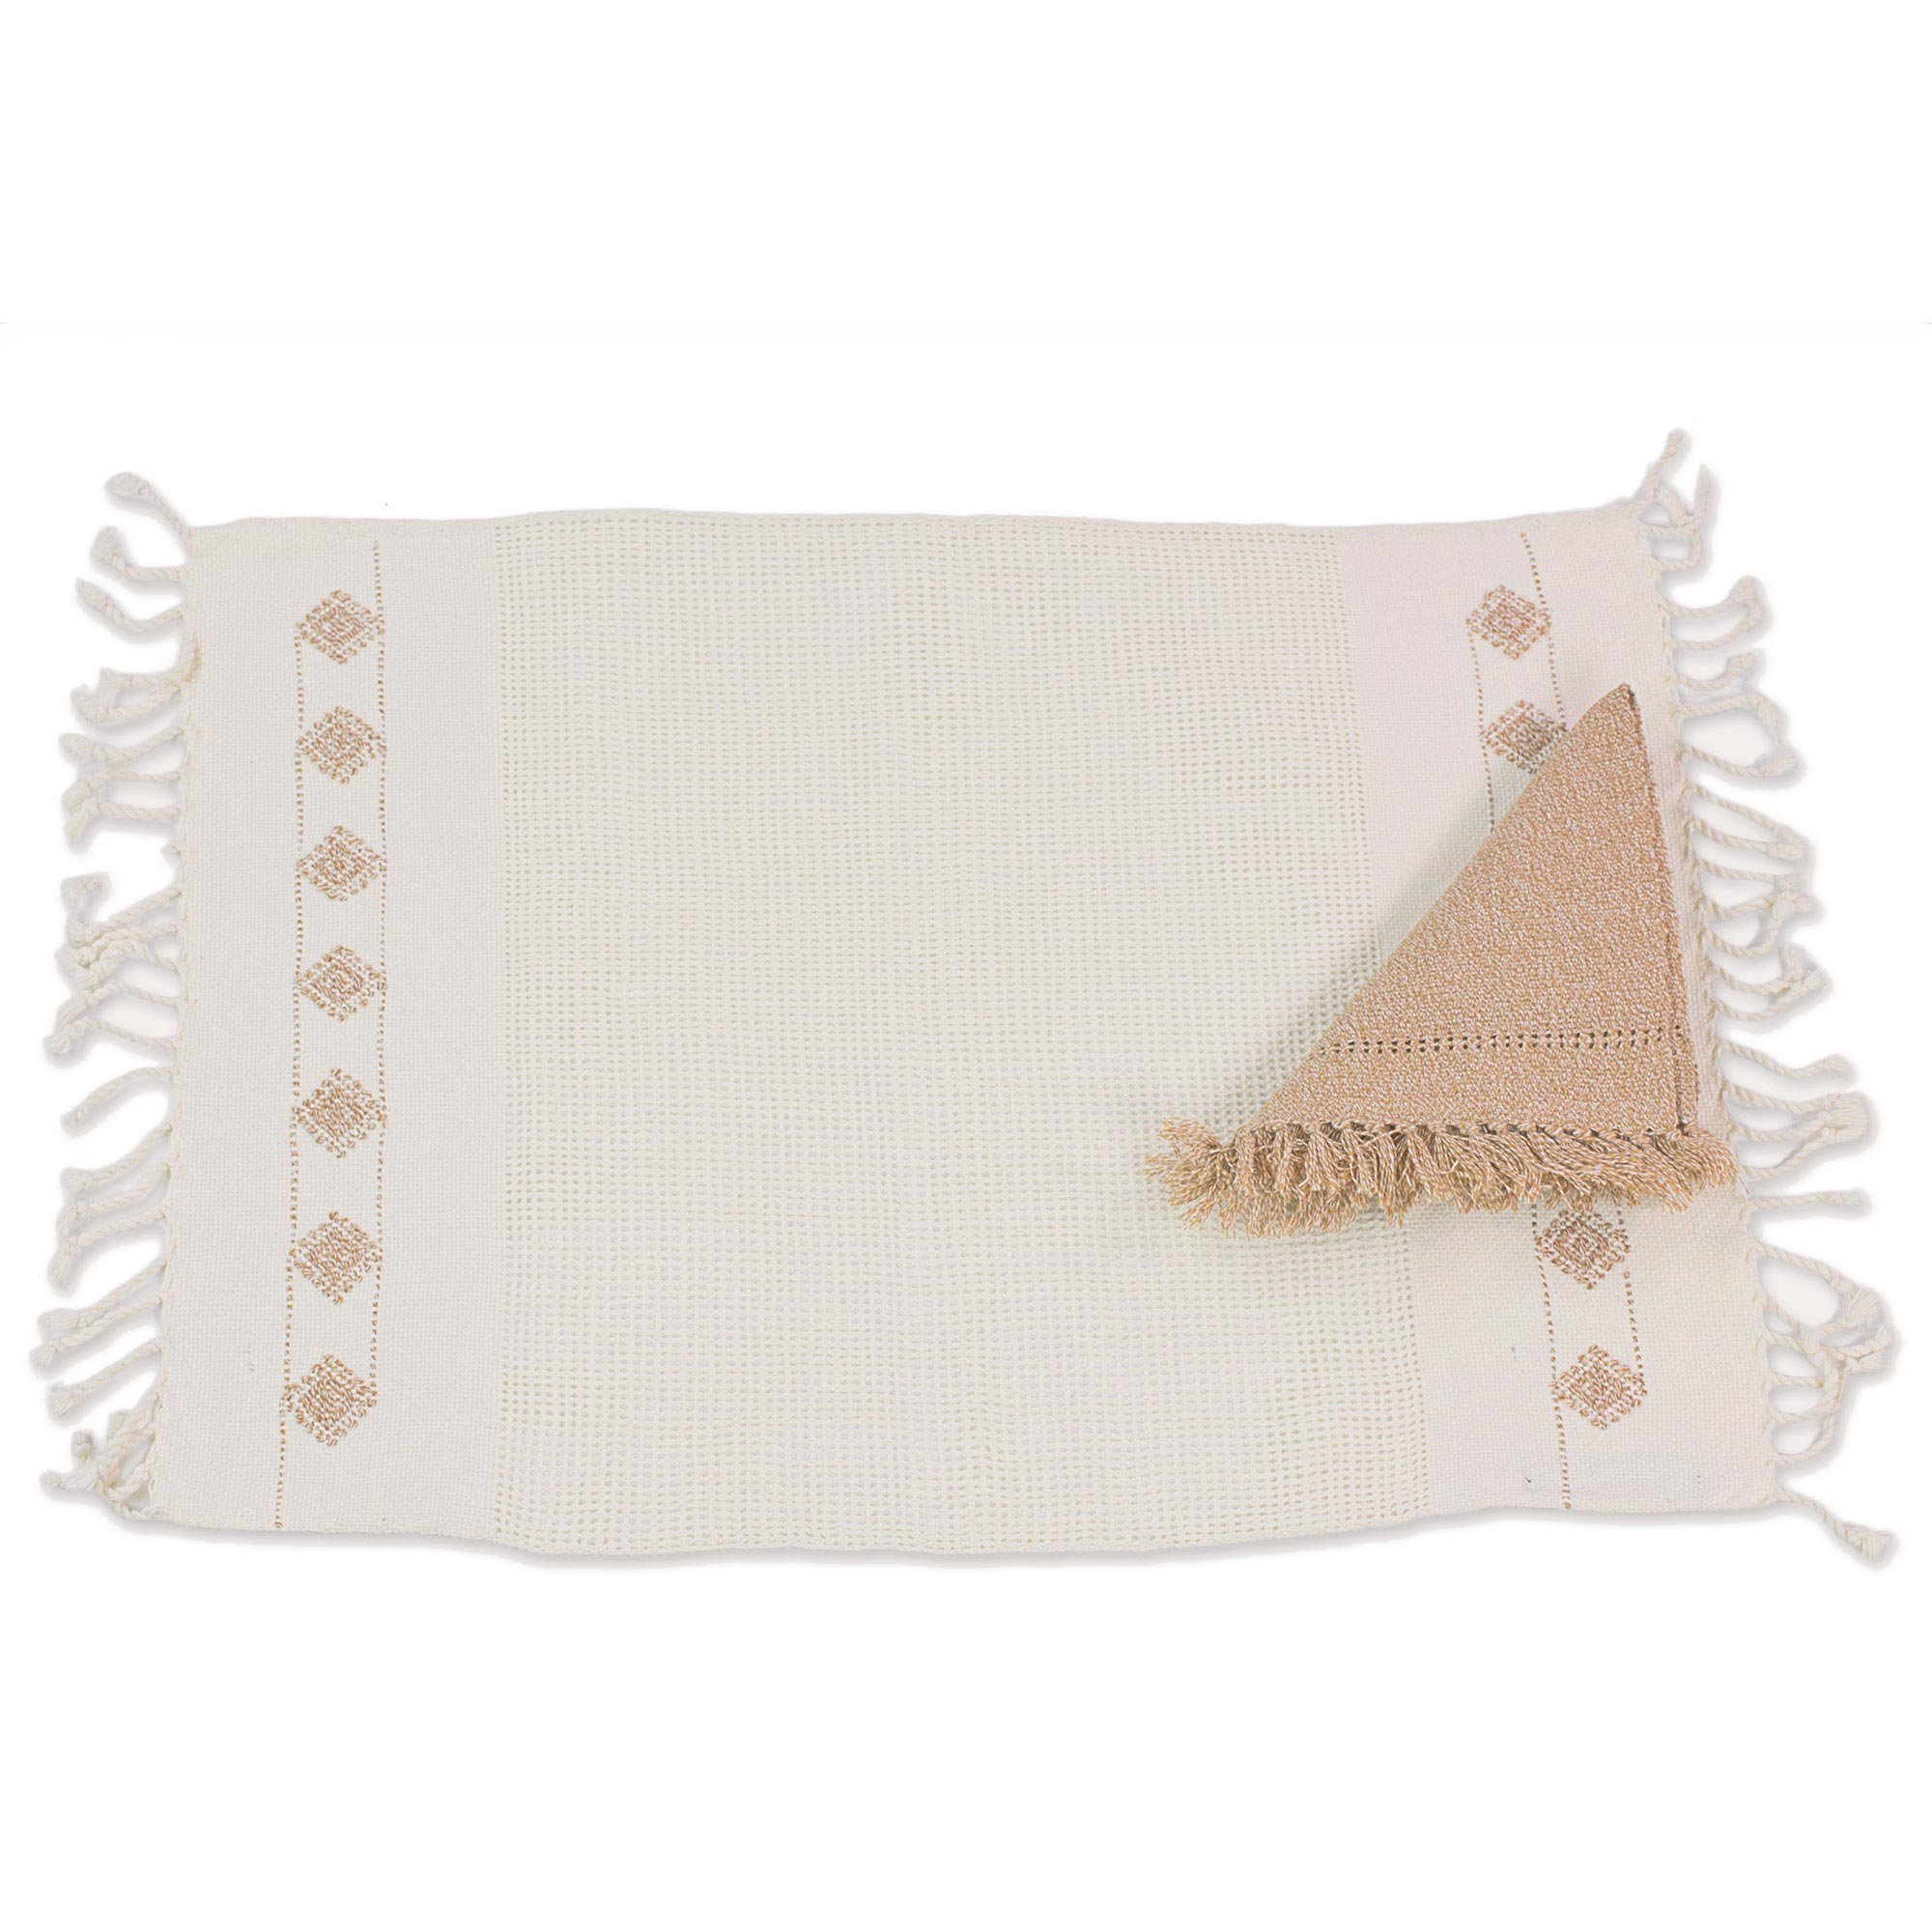 NOVICA Cotton placemats and napkins, Set For 4, Ivory Mesh